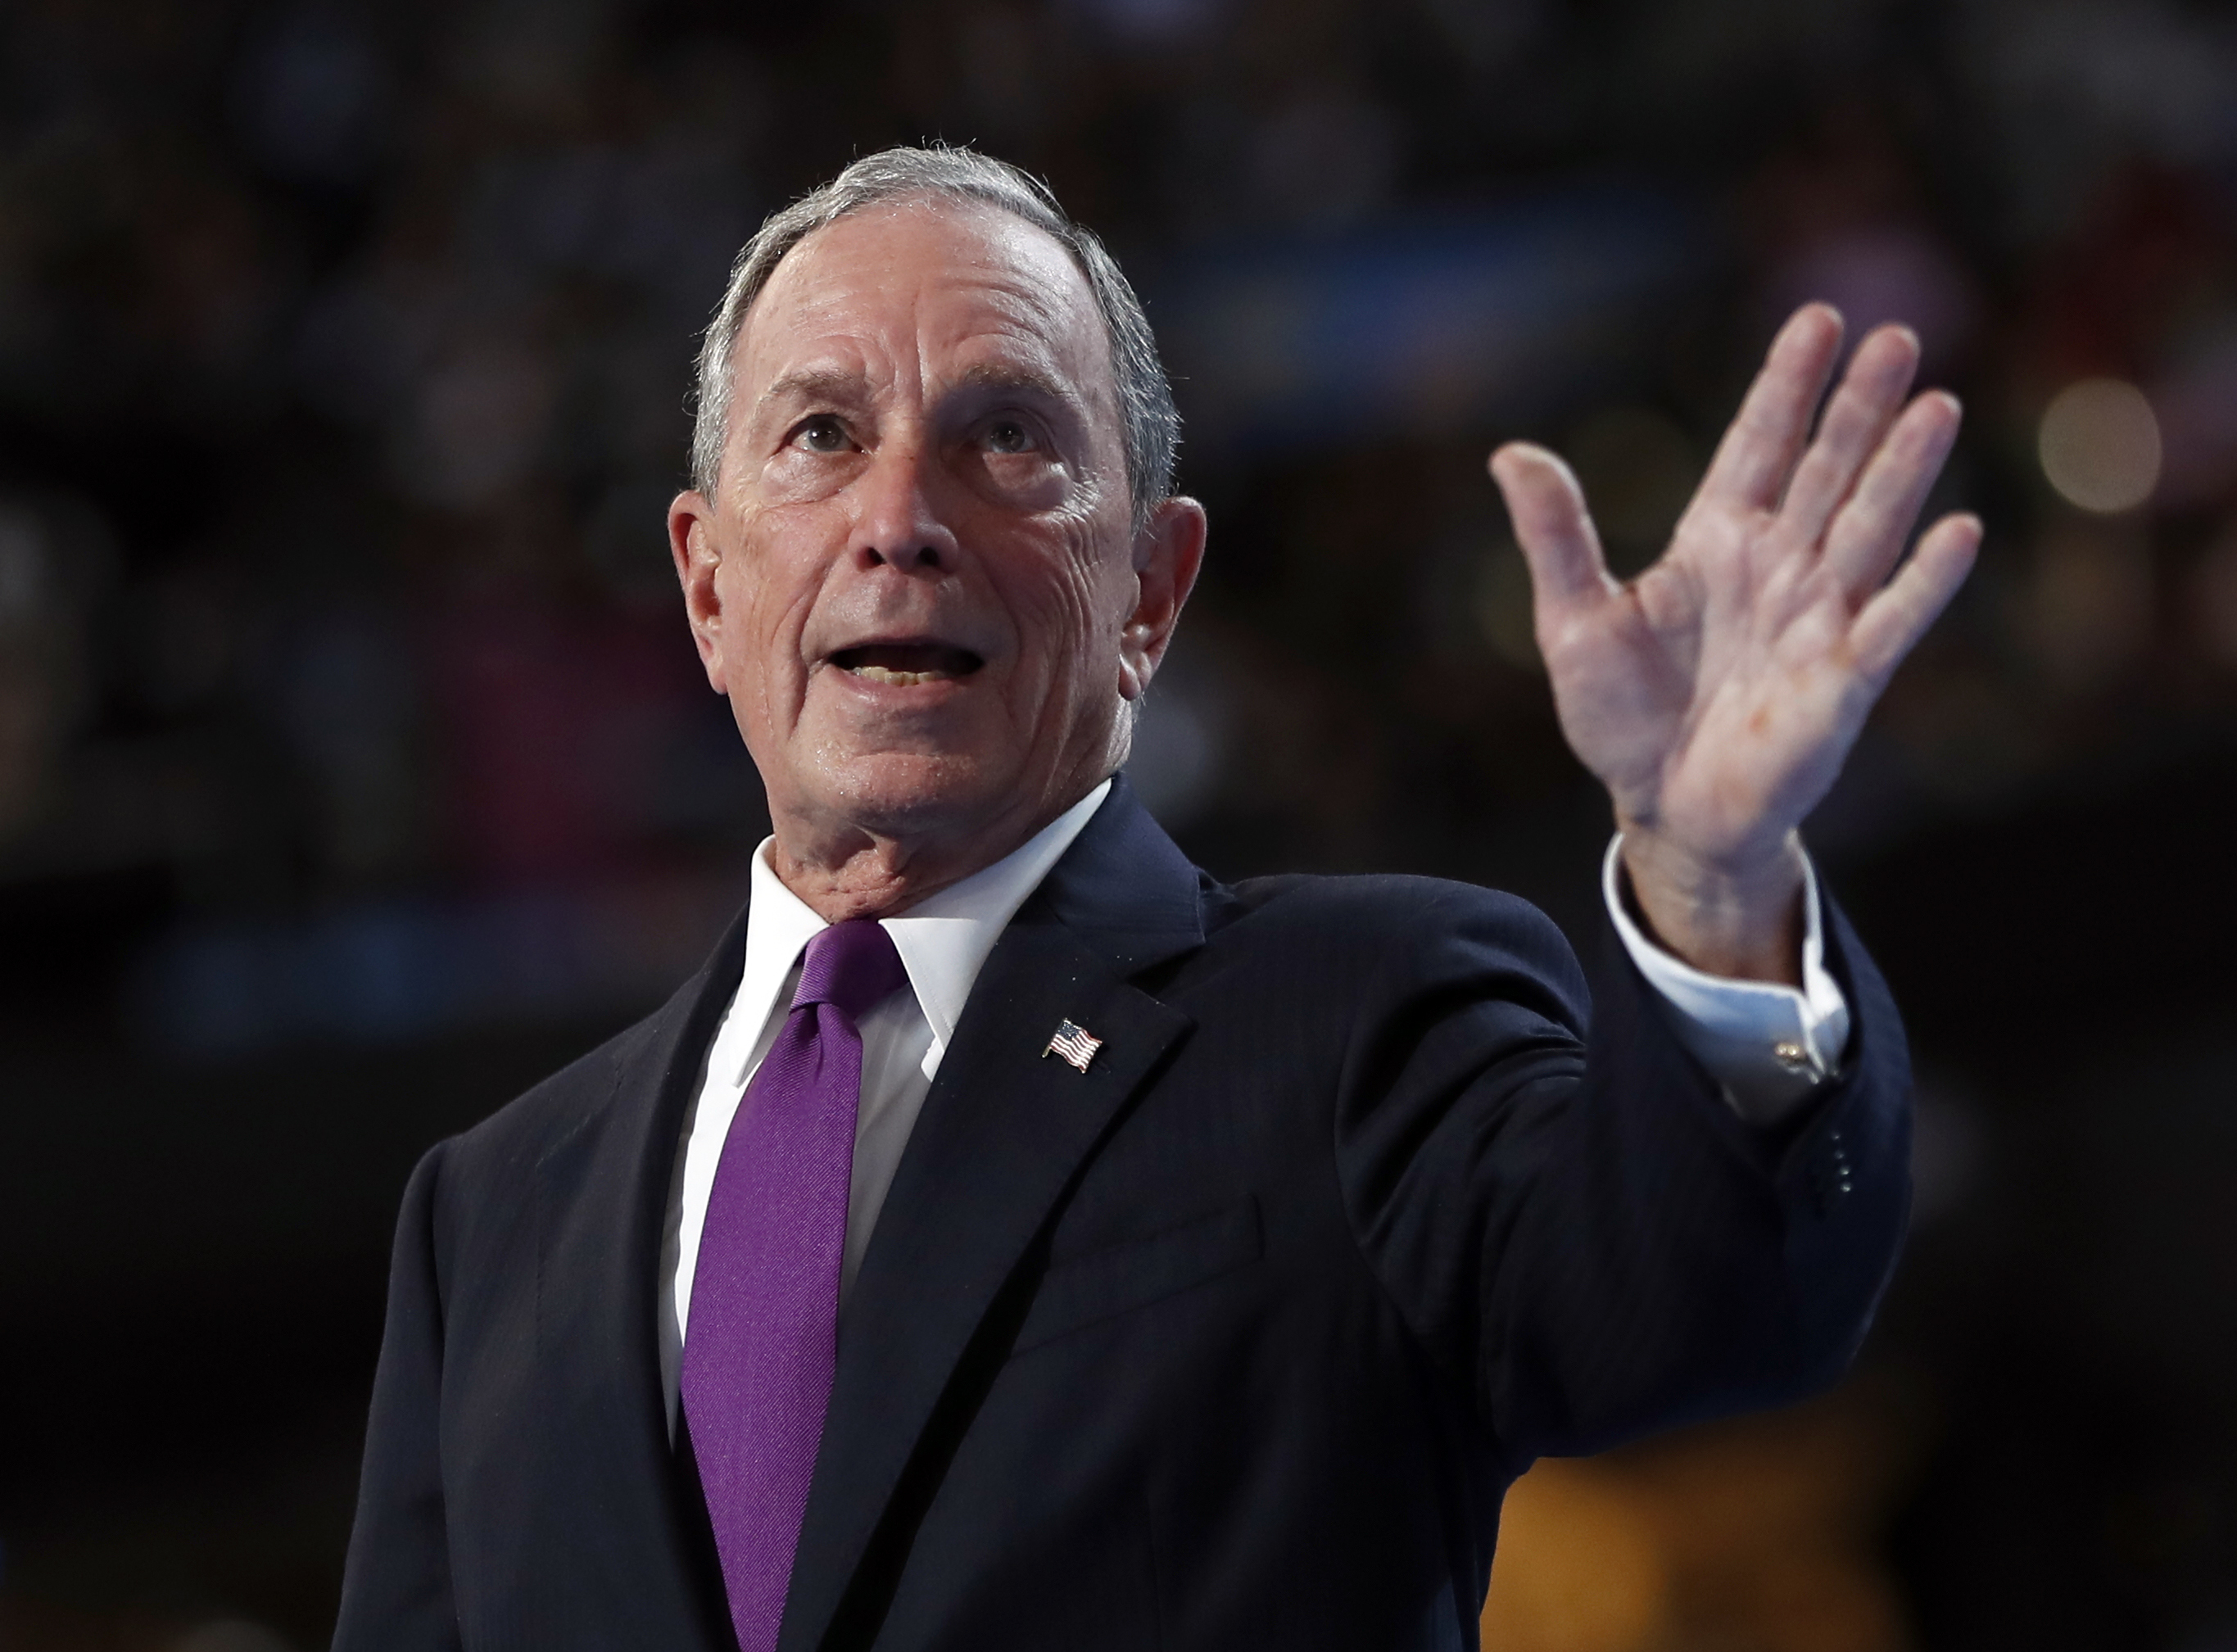 michael bloomberg world leaders ignore donald trump climate